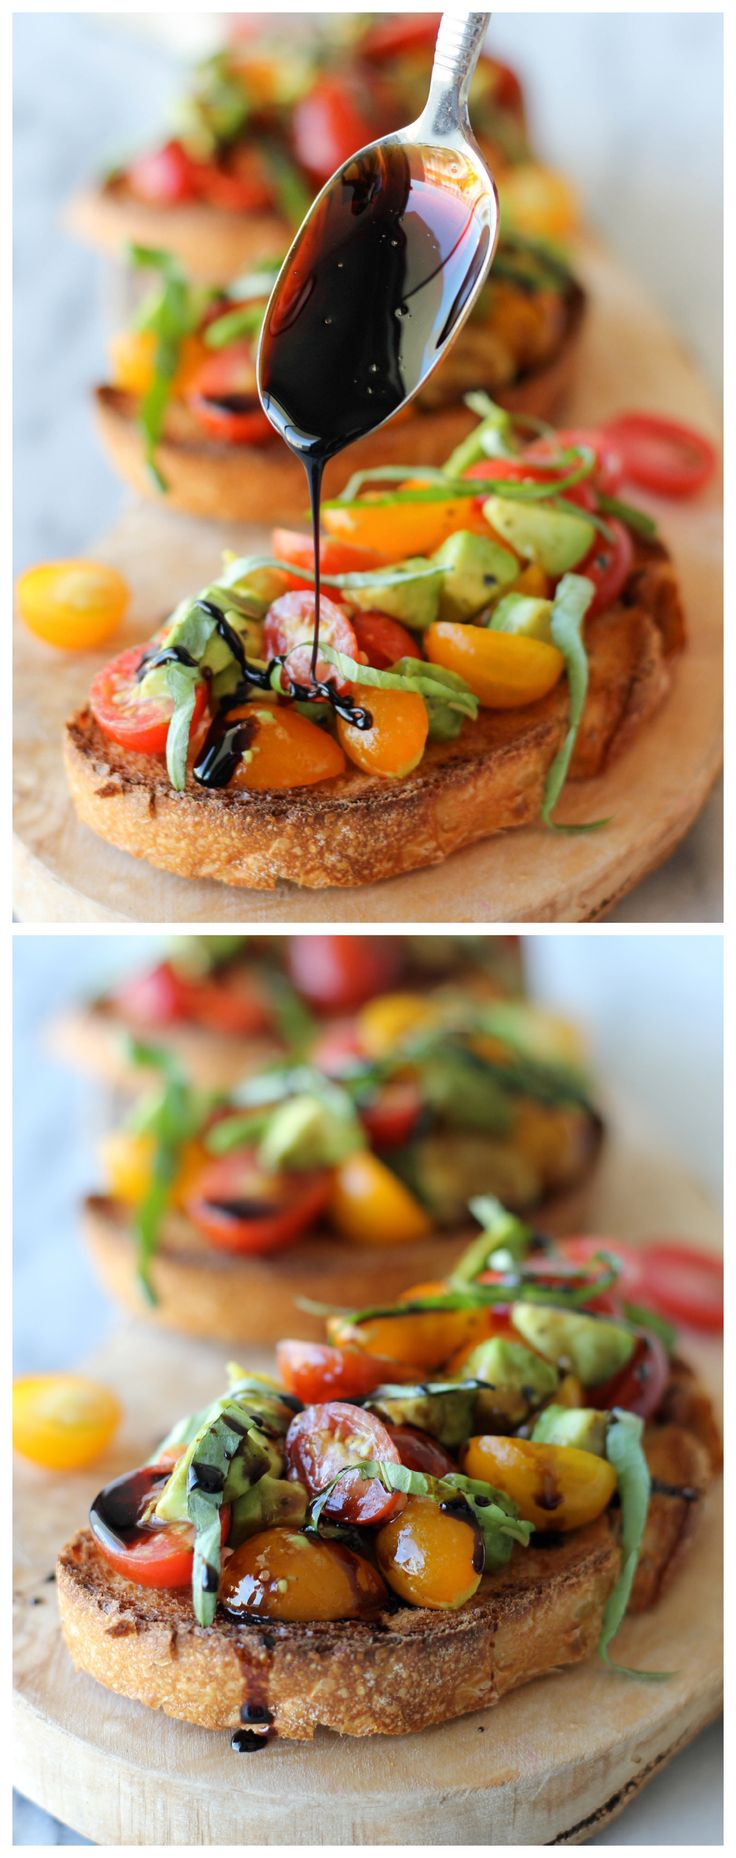 Bruschetta tomates cerises/avocat with Balsamic!